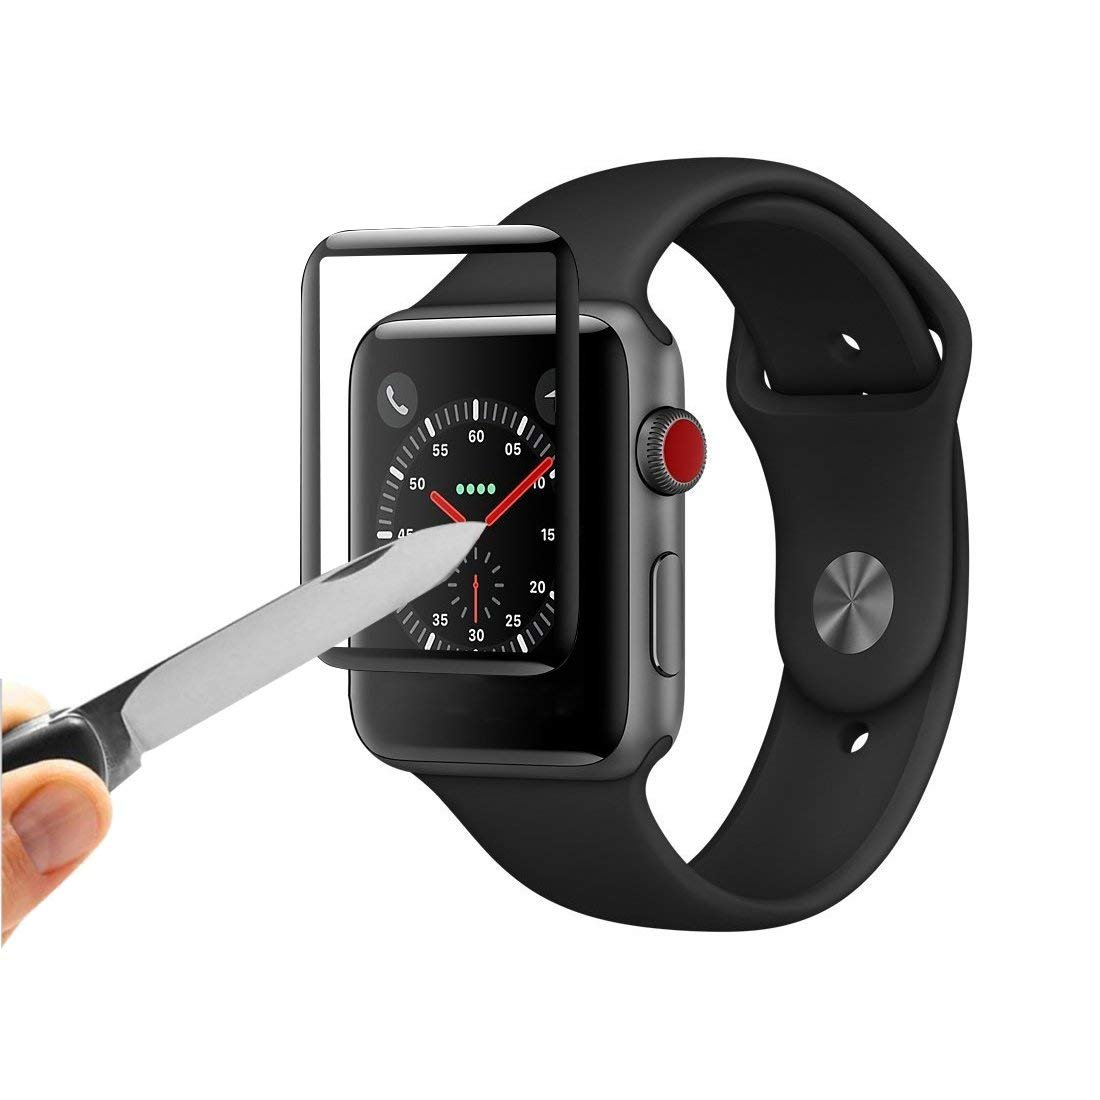 Apple iWatch Screen Protector 42mm, for iWatch 42mm Tempered Glass Screen Protector, 3D Full Coverage, HD Anti-Bubble, Anti-Scratch for Apple iWatch Series 3/2/1 (Black) (42mm) by Zyee (Image #5)